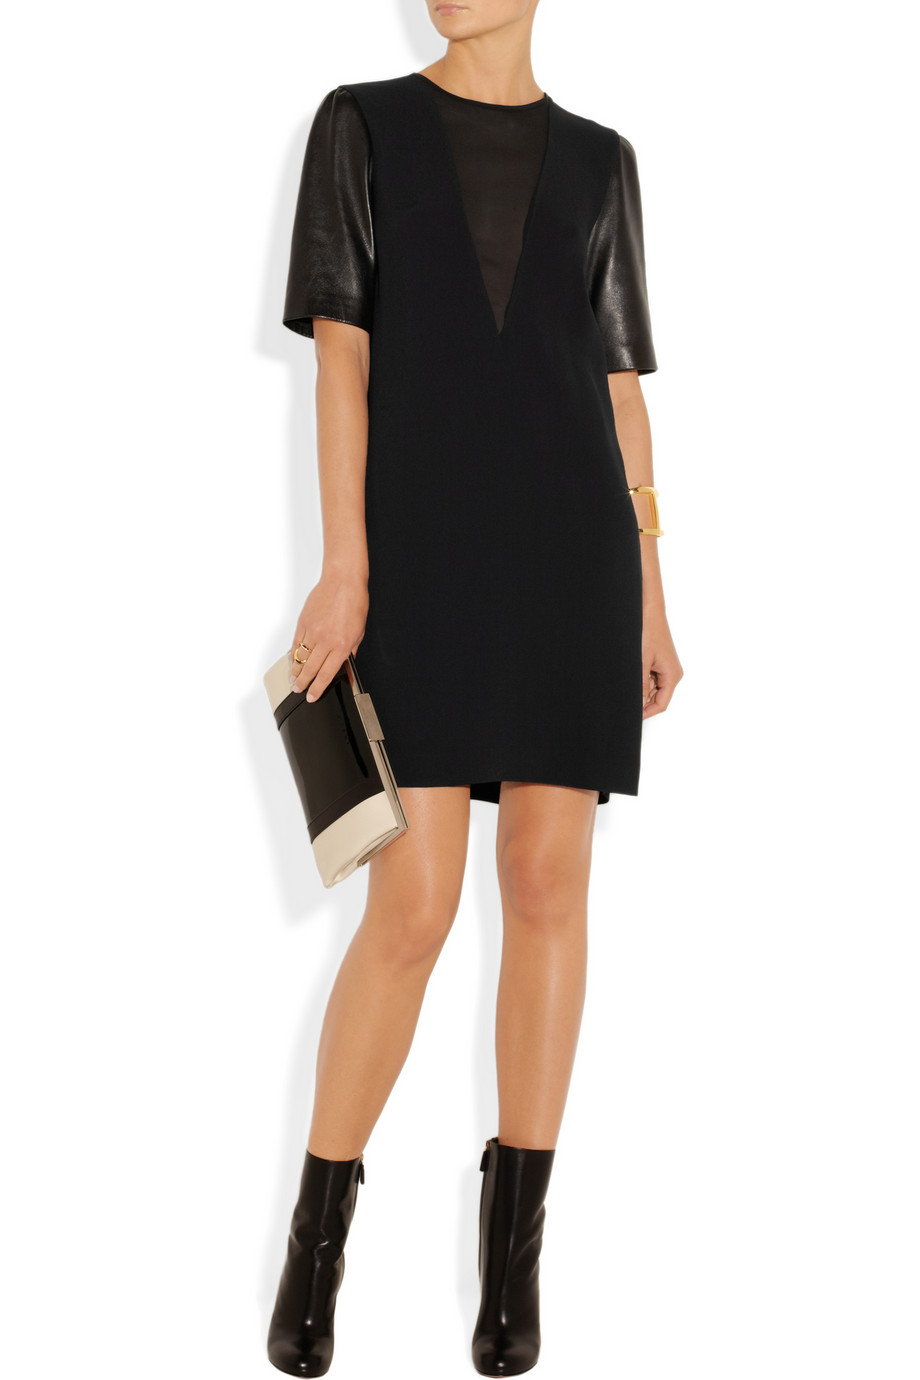 MIU MIU  Leather Sleeved Candy Shift Dress buy HERE